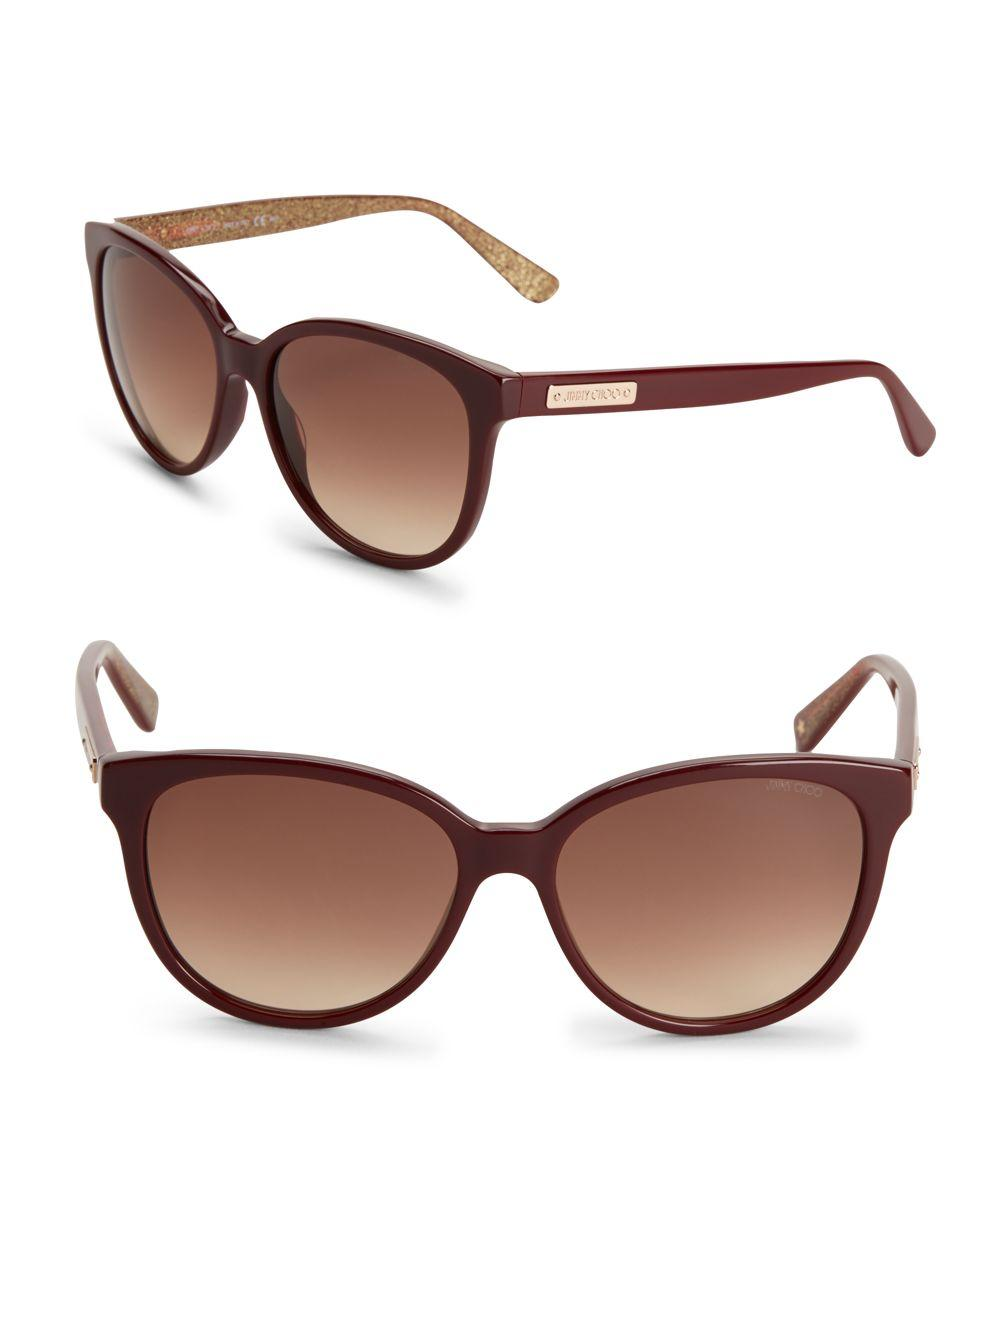 3776a39133de Lyst - Jimmy Choo Gradient Goldtone Logo Etched Sunglasses in Red